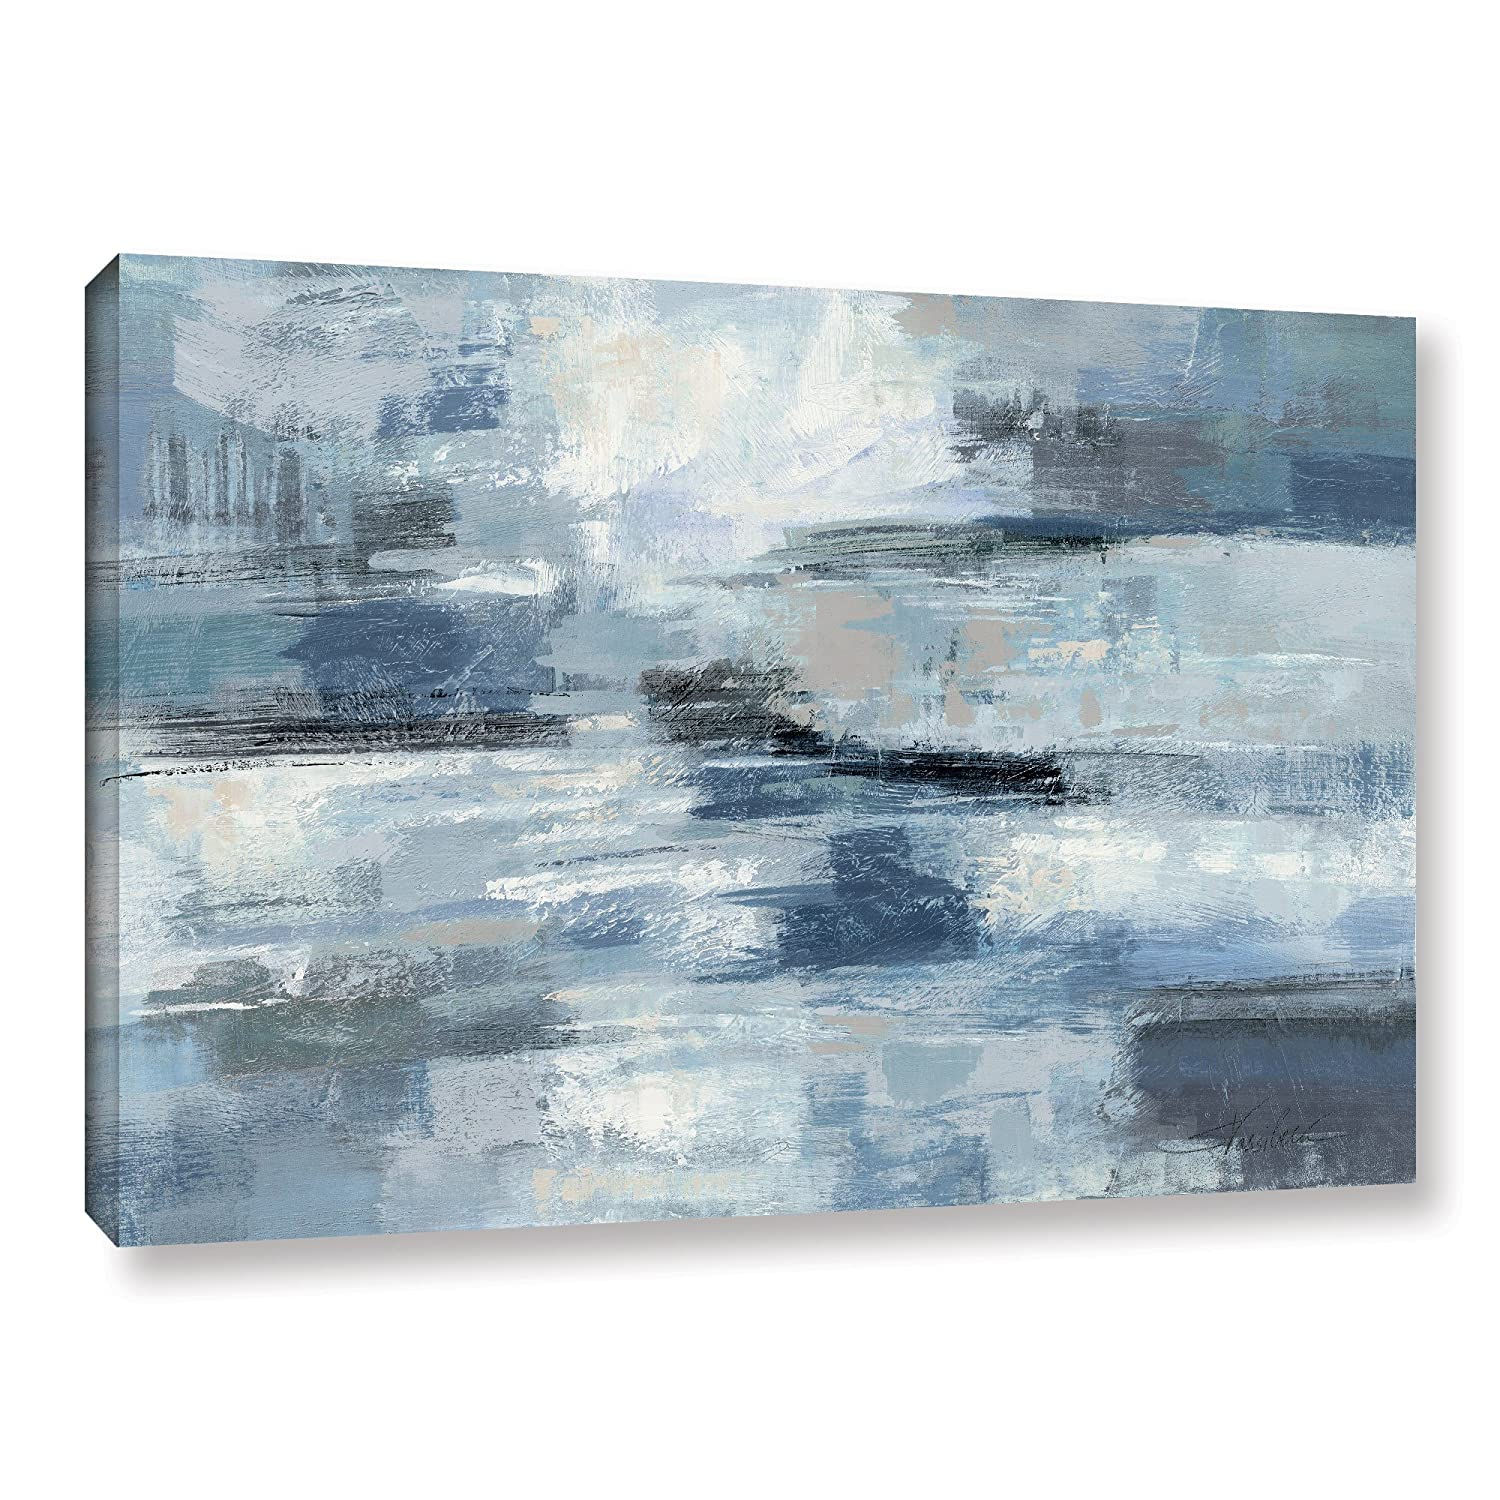 ArtWall Clear Water Indigo and Gray by Silvia Vassileva Blue Wall Art Abstract Gallery-Wrapped Canvas, 32X48, Picture for Home, Bedroom, Bathroom, and Living Room Decor